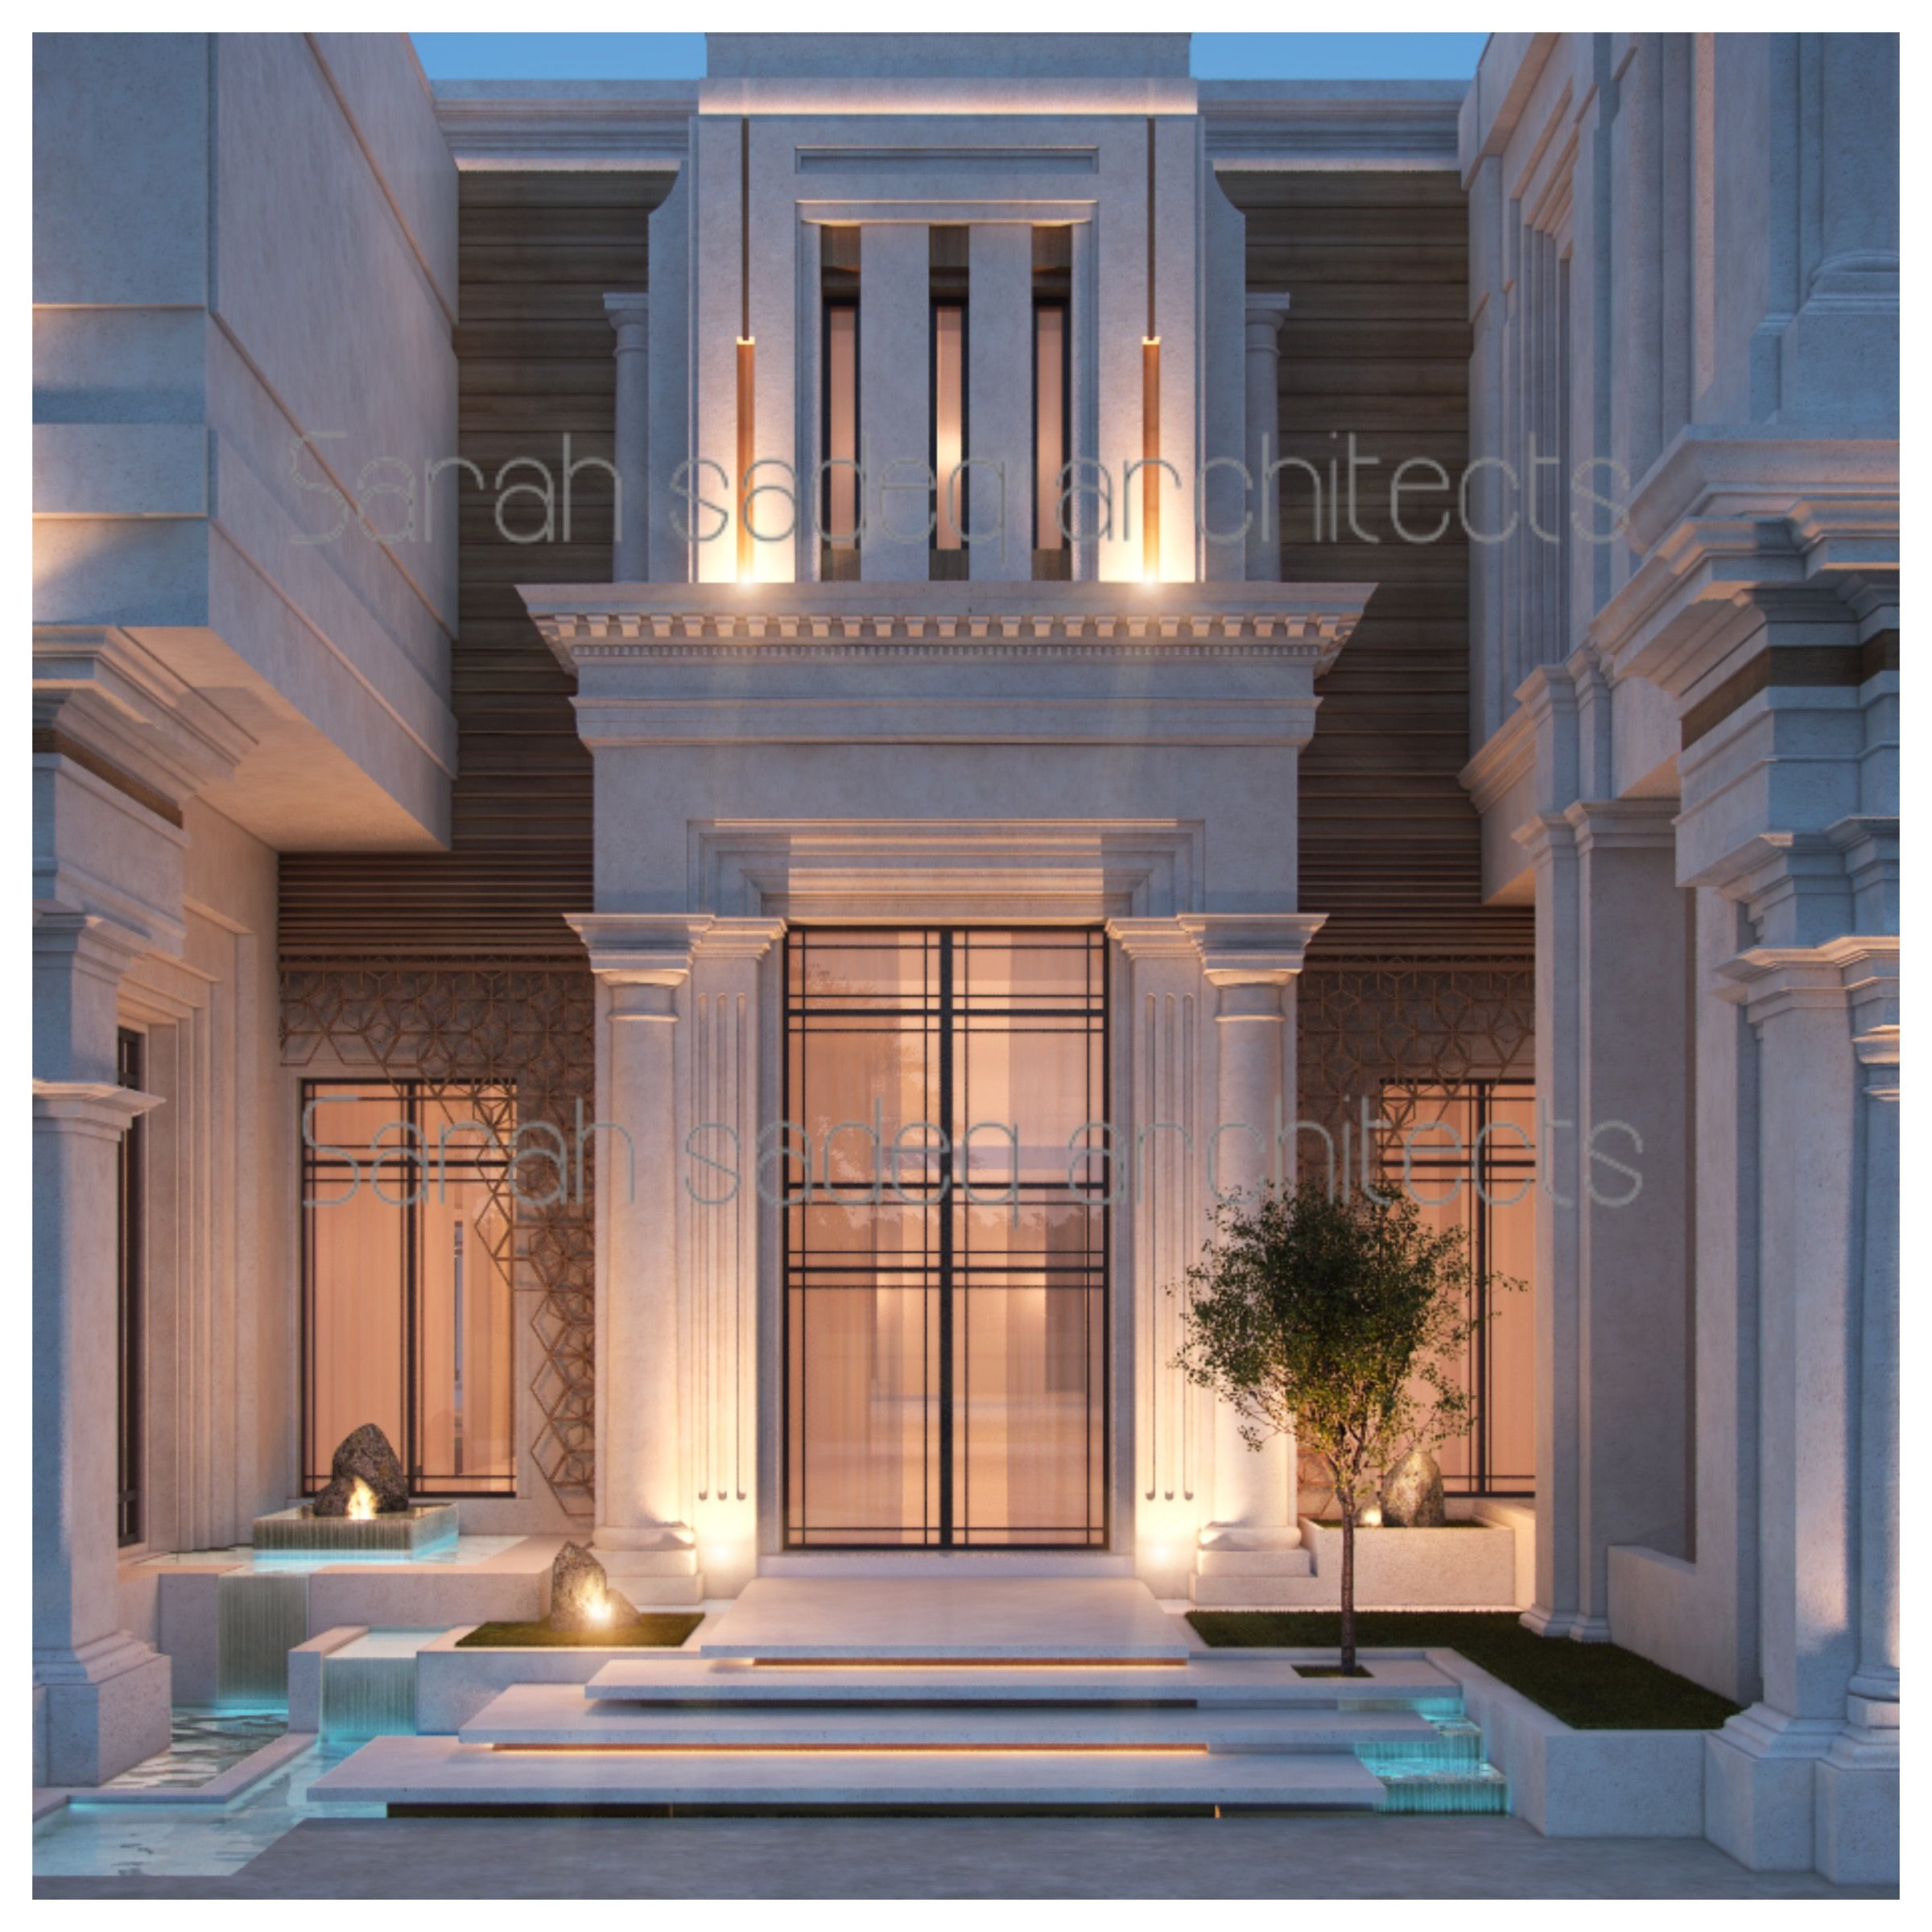 house exterior design in dubai with 302656037443676465 on Home Exterior Design House Interior together with Project 27 besides antonovich Design in addition Project 22 8 besides Classic Villa United Arab Emirates.